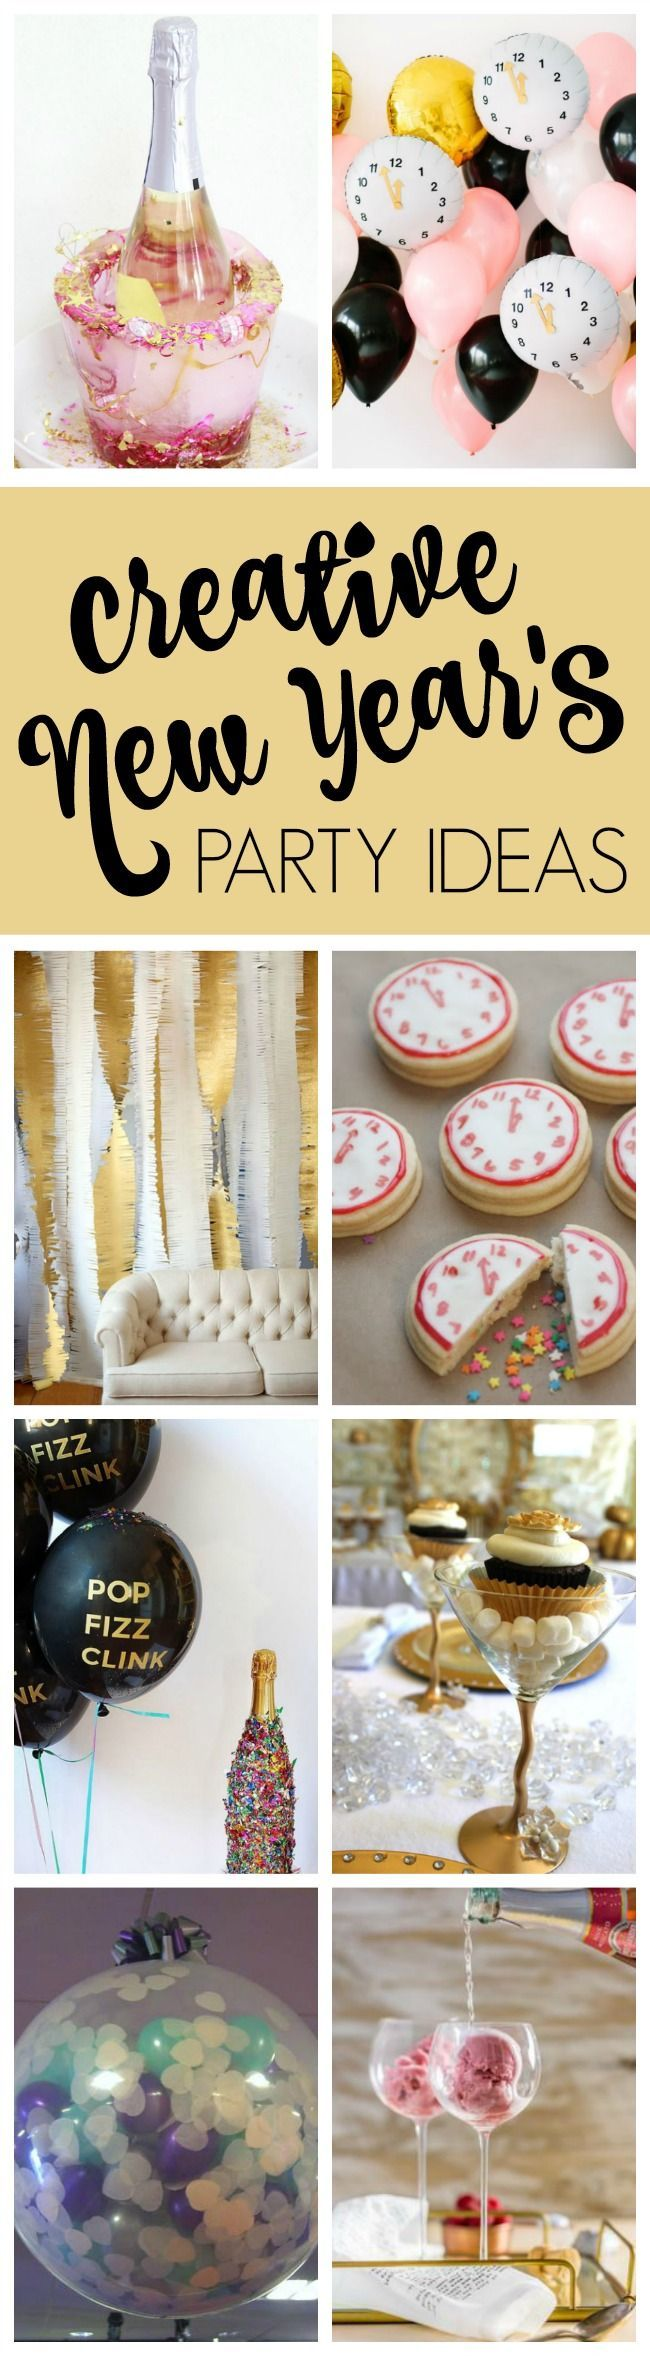 http://tipsalud.com 25 Best Ever New Year's Eve Party Ideas on Pretty My Party